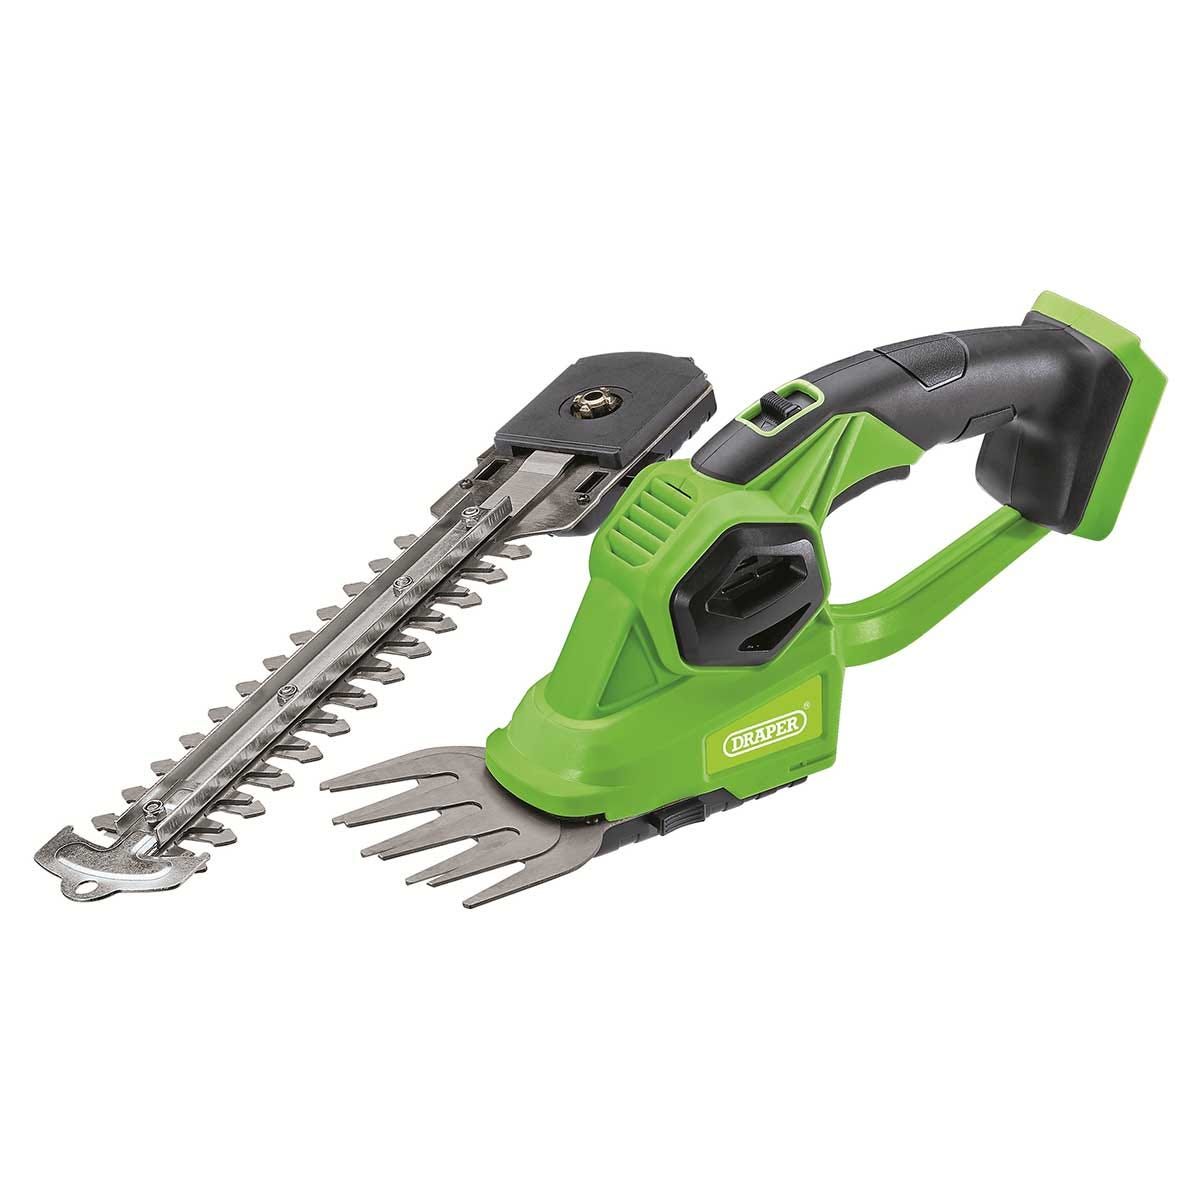 Draper D20 20V 2-In-1 Grass And Hedge Trimmer - Bare